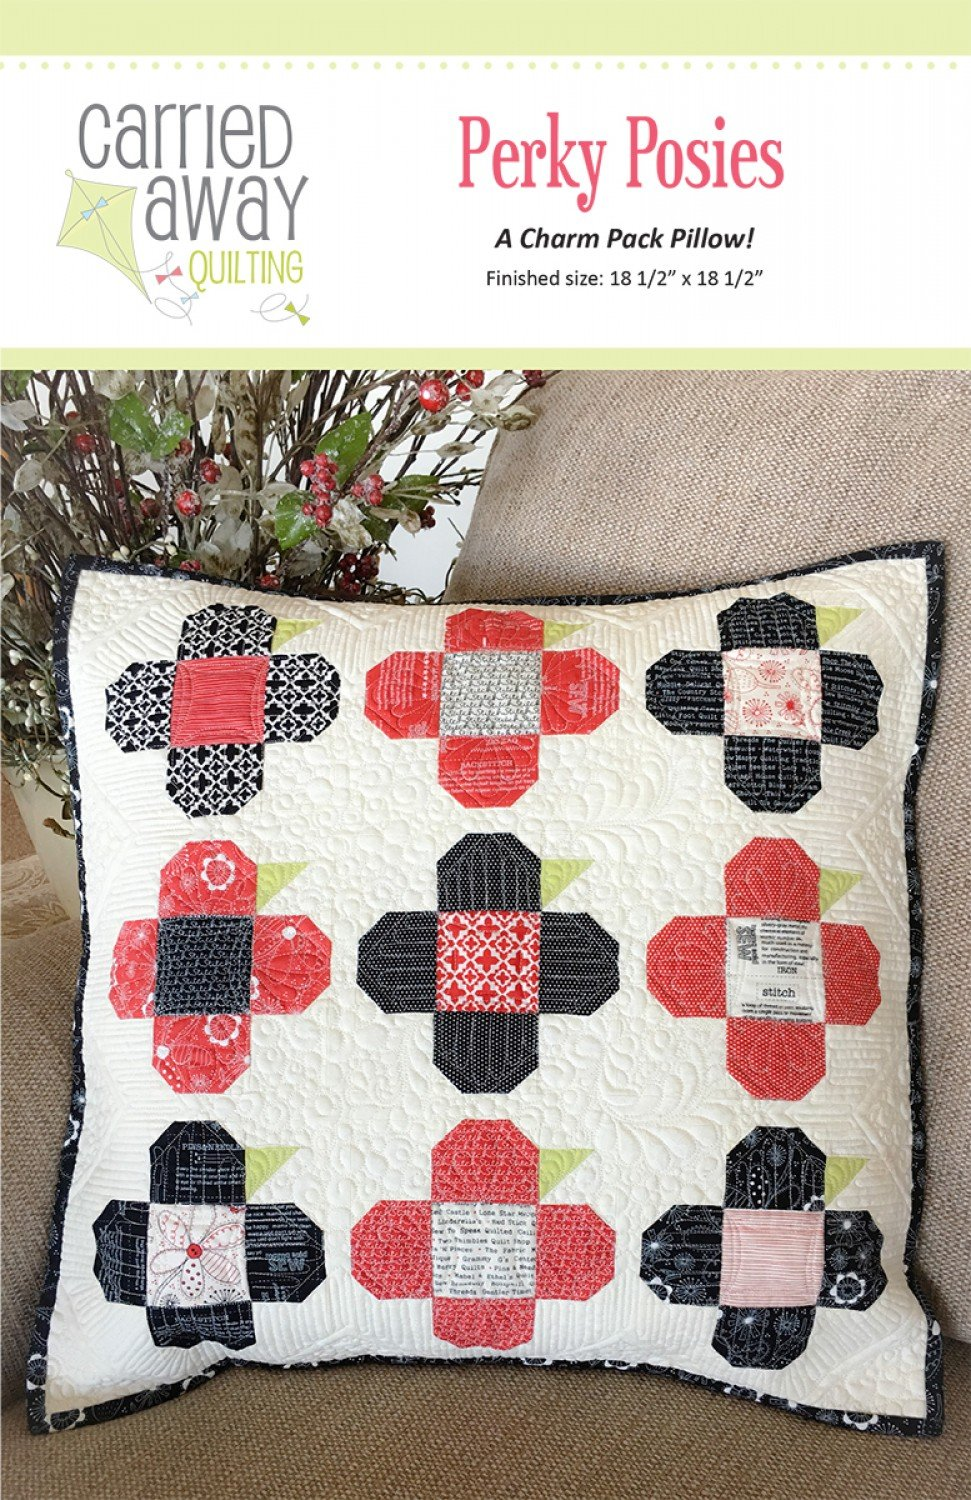 Perky Posies By Taunja Kelvington From Carried Away Quilting